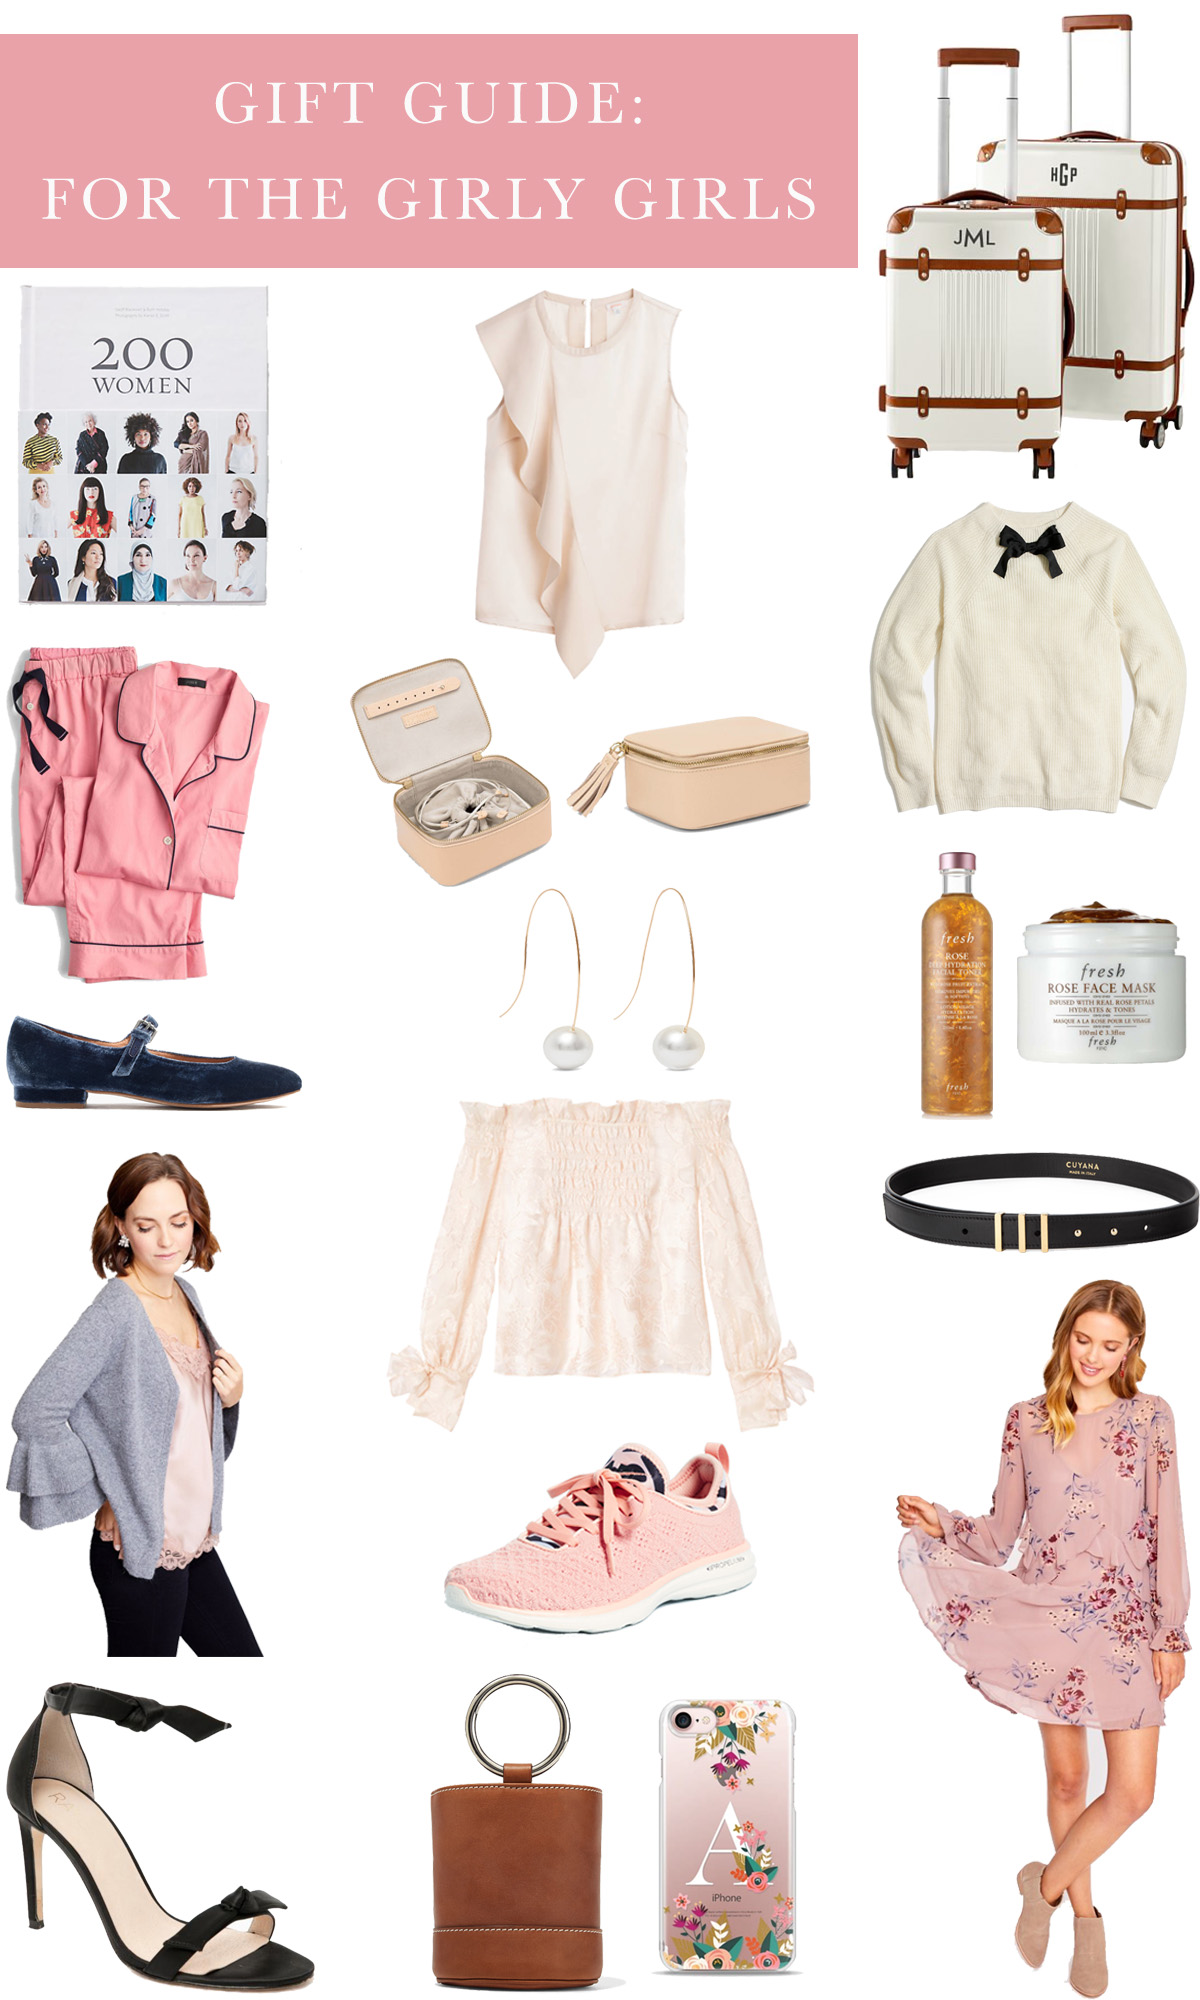 A Roundup of the Best Feminine Holiday Gifts For Girls // Gift Guide: For The Girly Girls // Rhyme & Reason